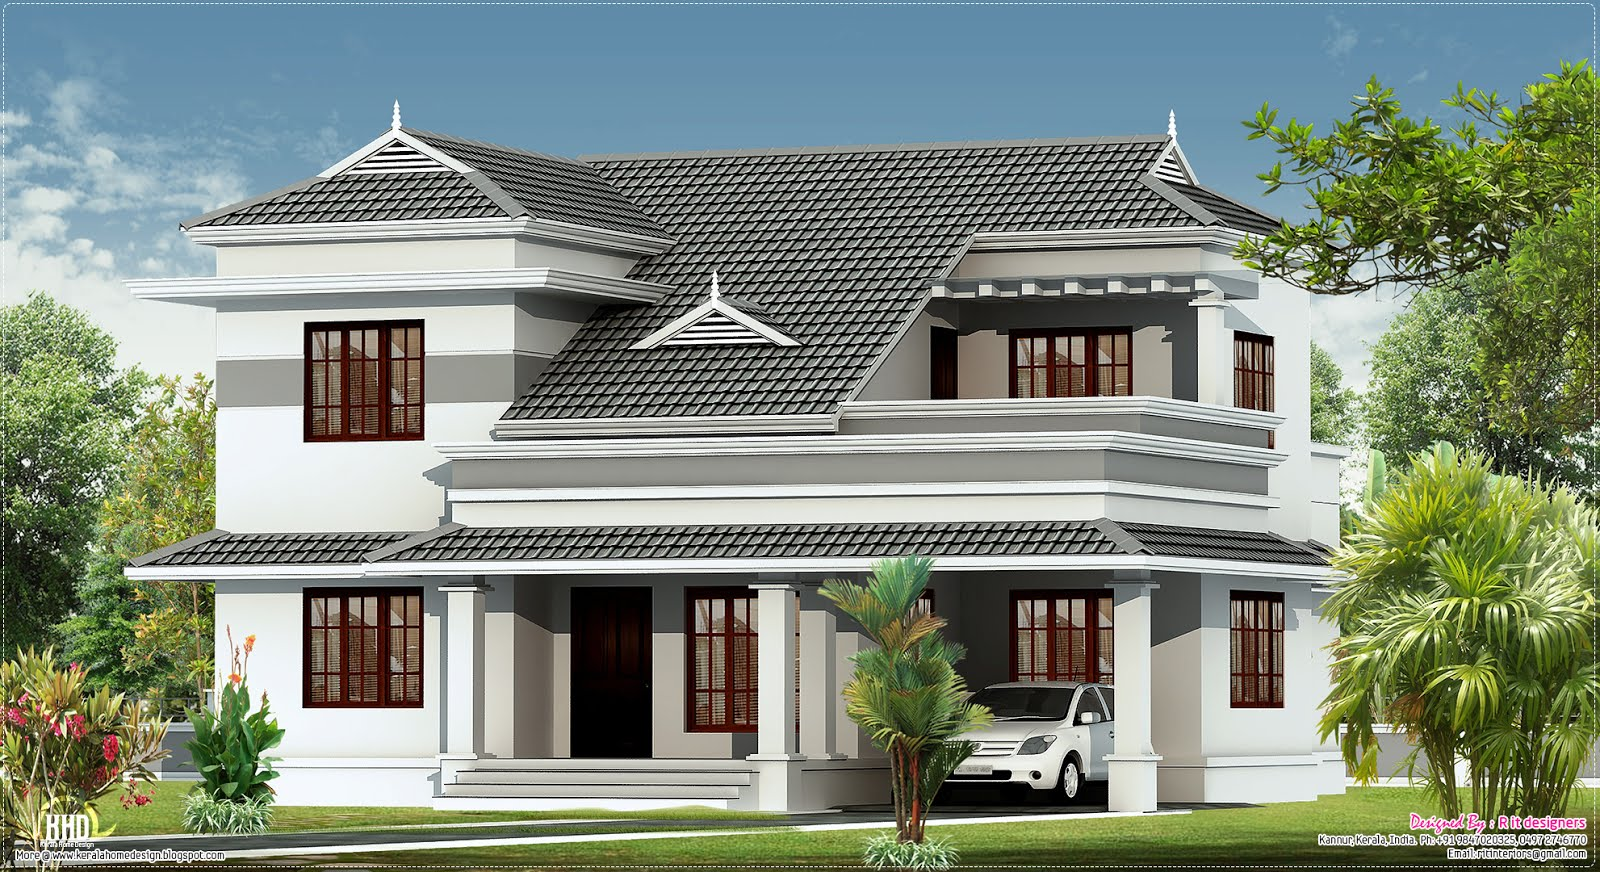 New villa design in 2250 kerala home design and for New style house plans